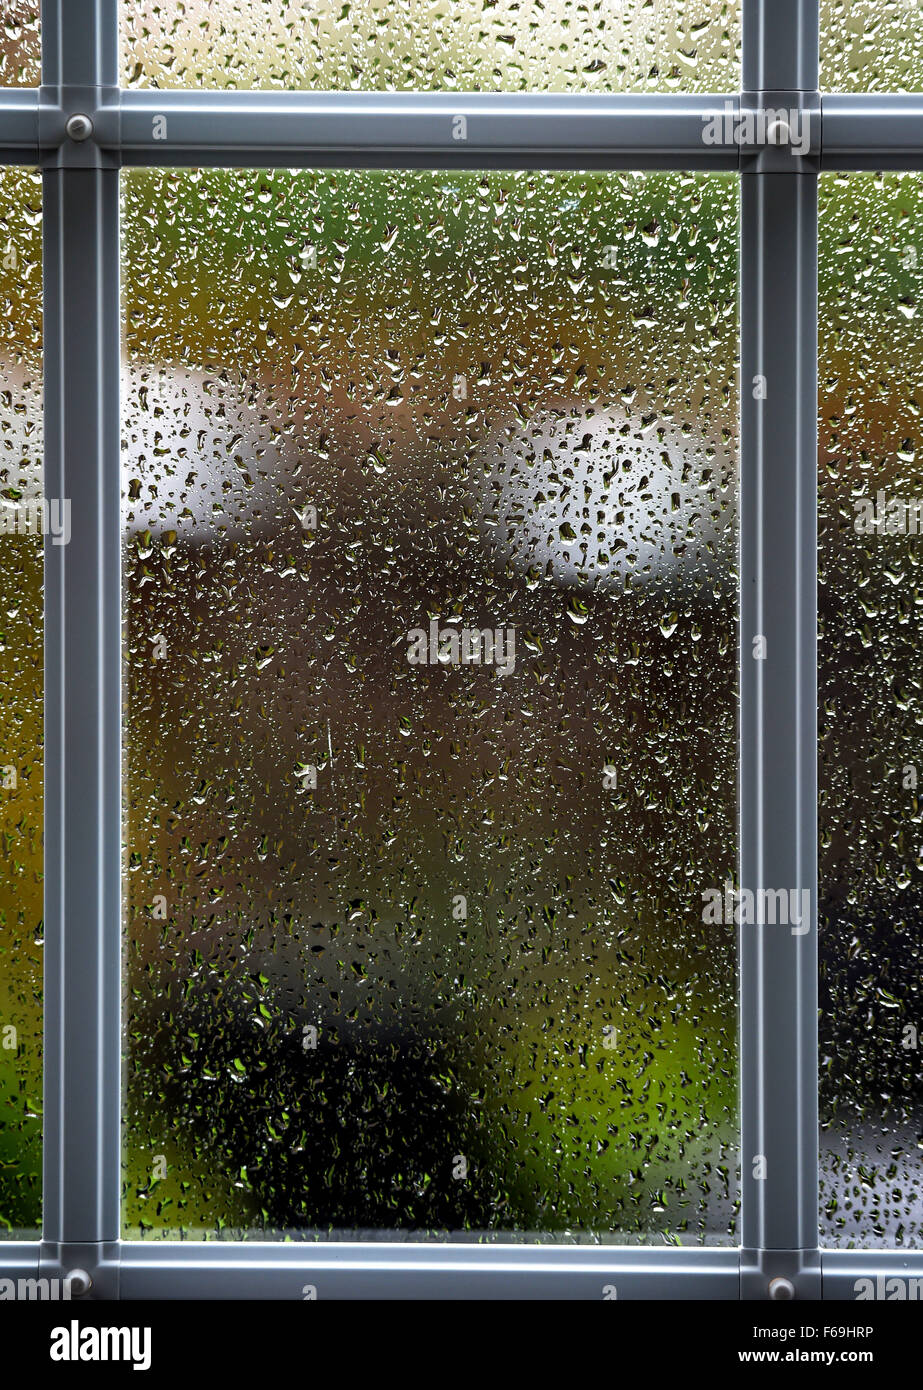 Raindrops on glass window pane on bad weather day UK - Stock Image